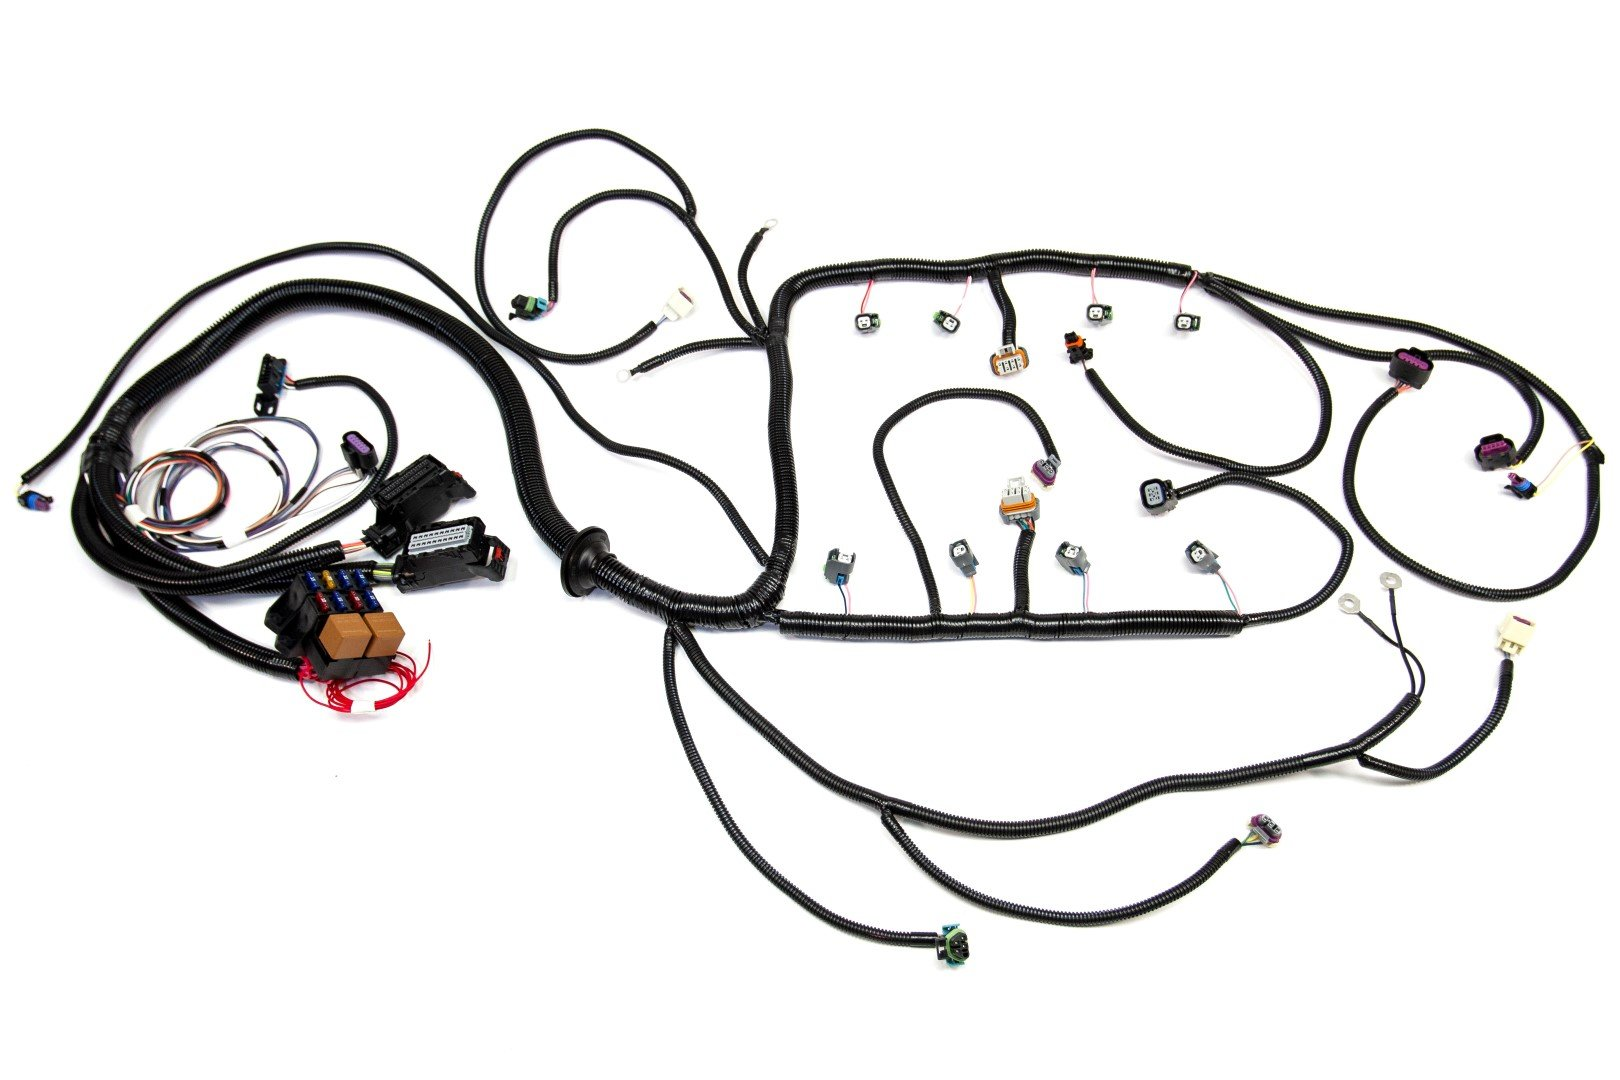 ly2 Delphi Wiring Harness Connectors 08 lm5 lmg 5 3l standalone wiring harness w